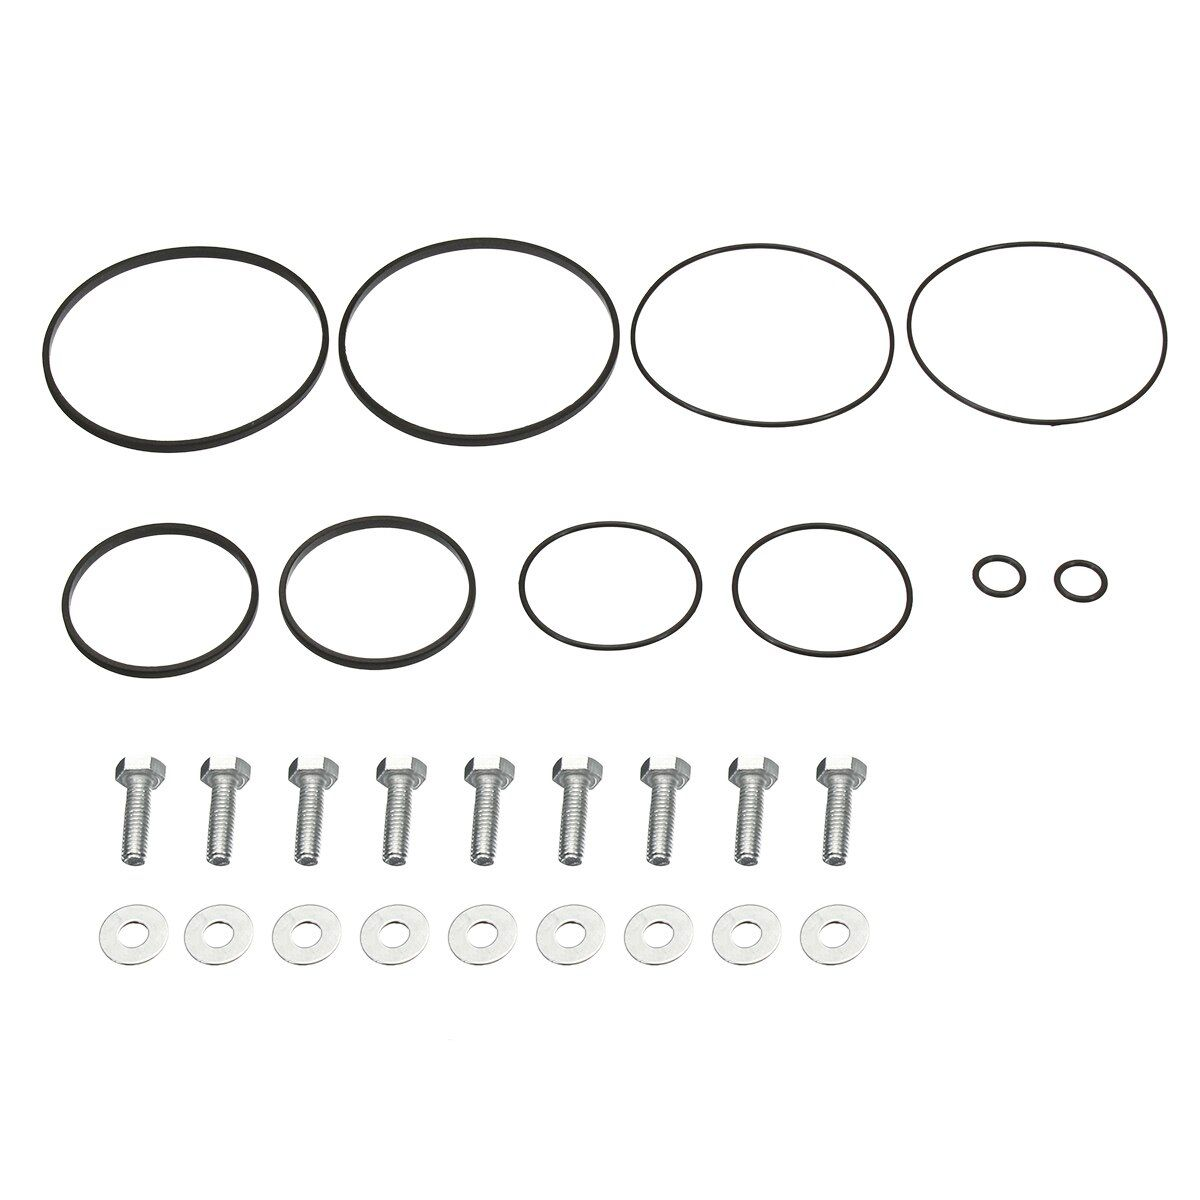 Newest Twin Double Dual VANOS Seals Repair Upgrade Kit For BMW M52TU M54 M56 Viton PTFE